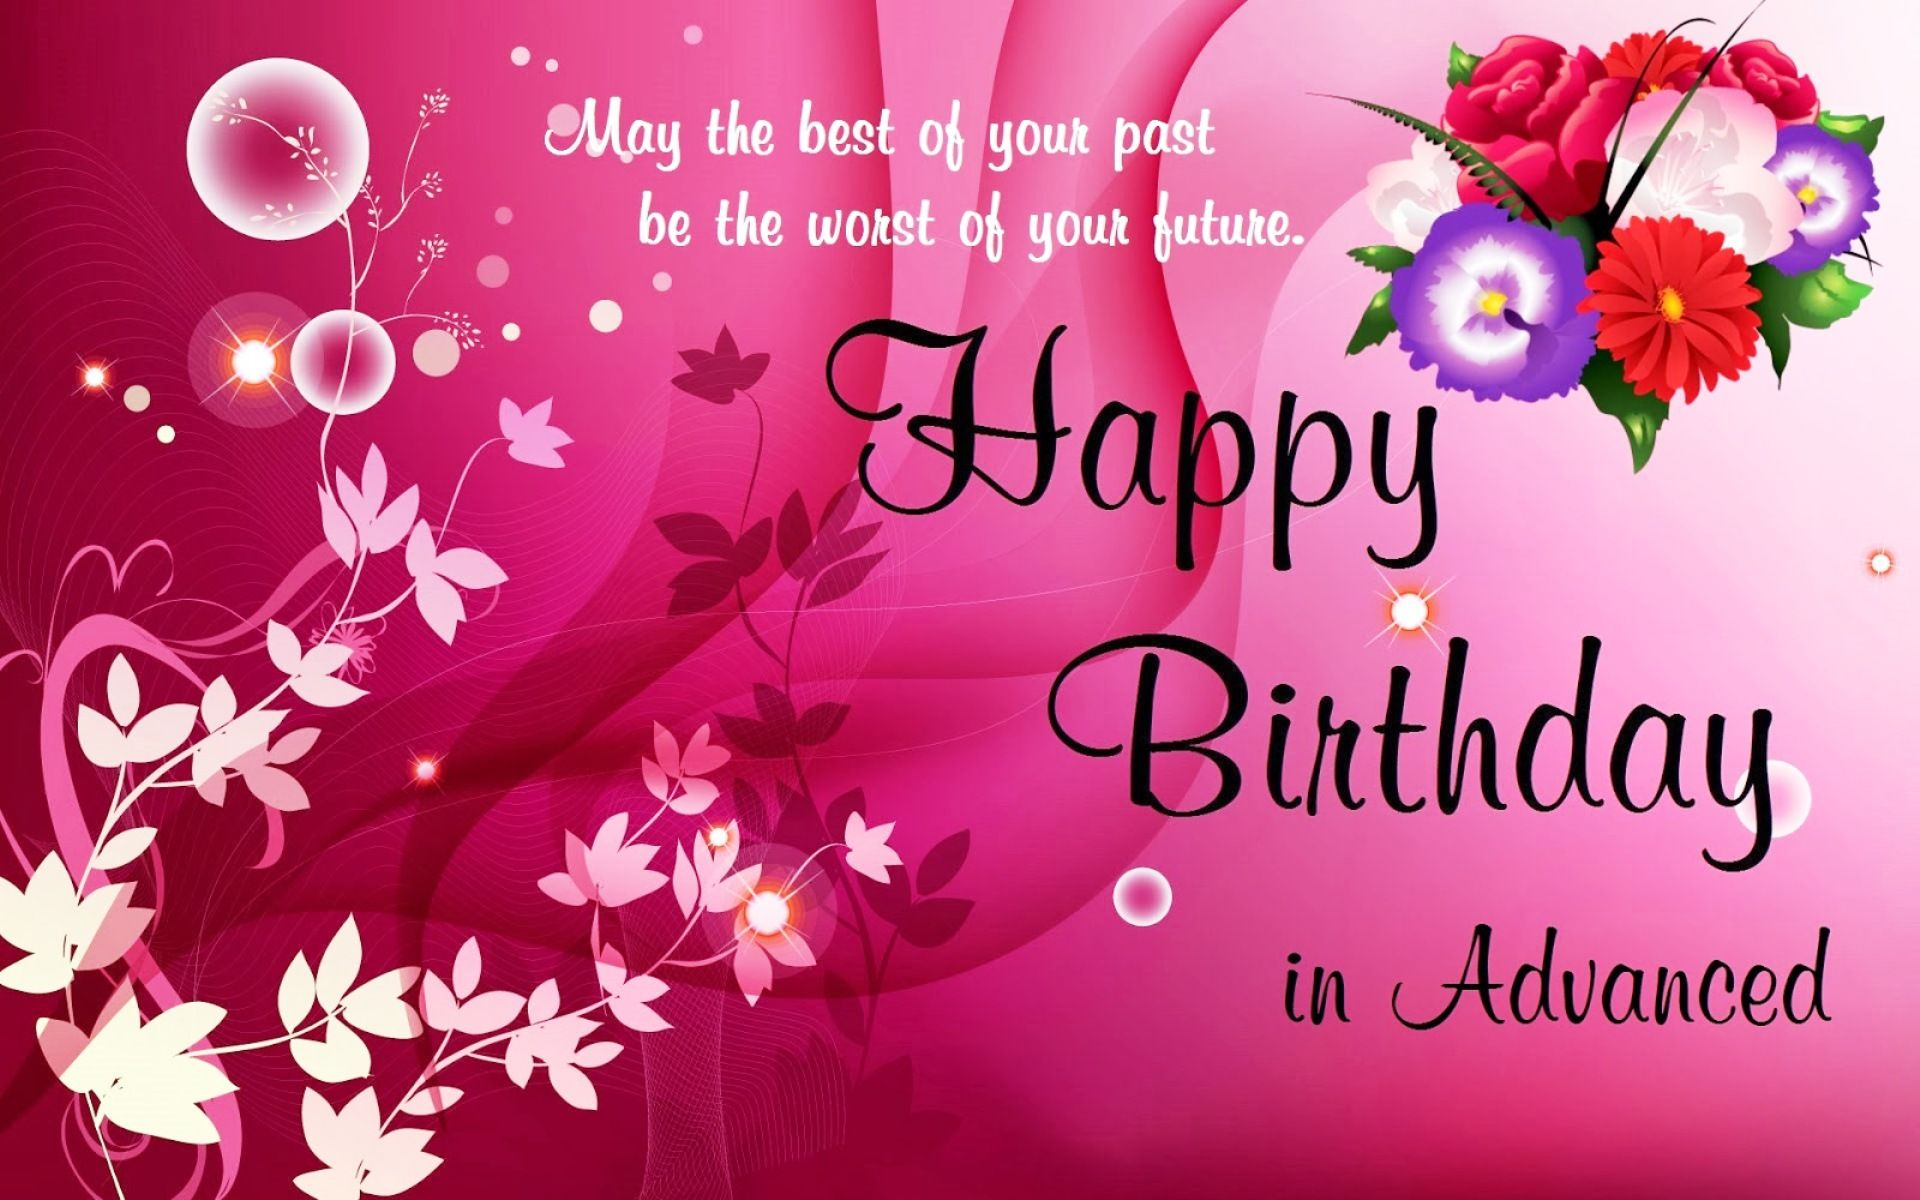 happy birthday images free download with wishes birthday happy